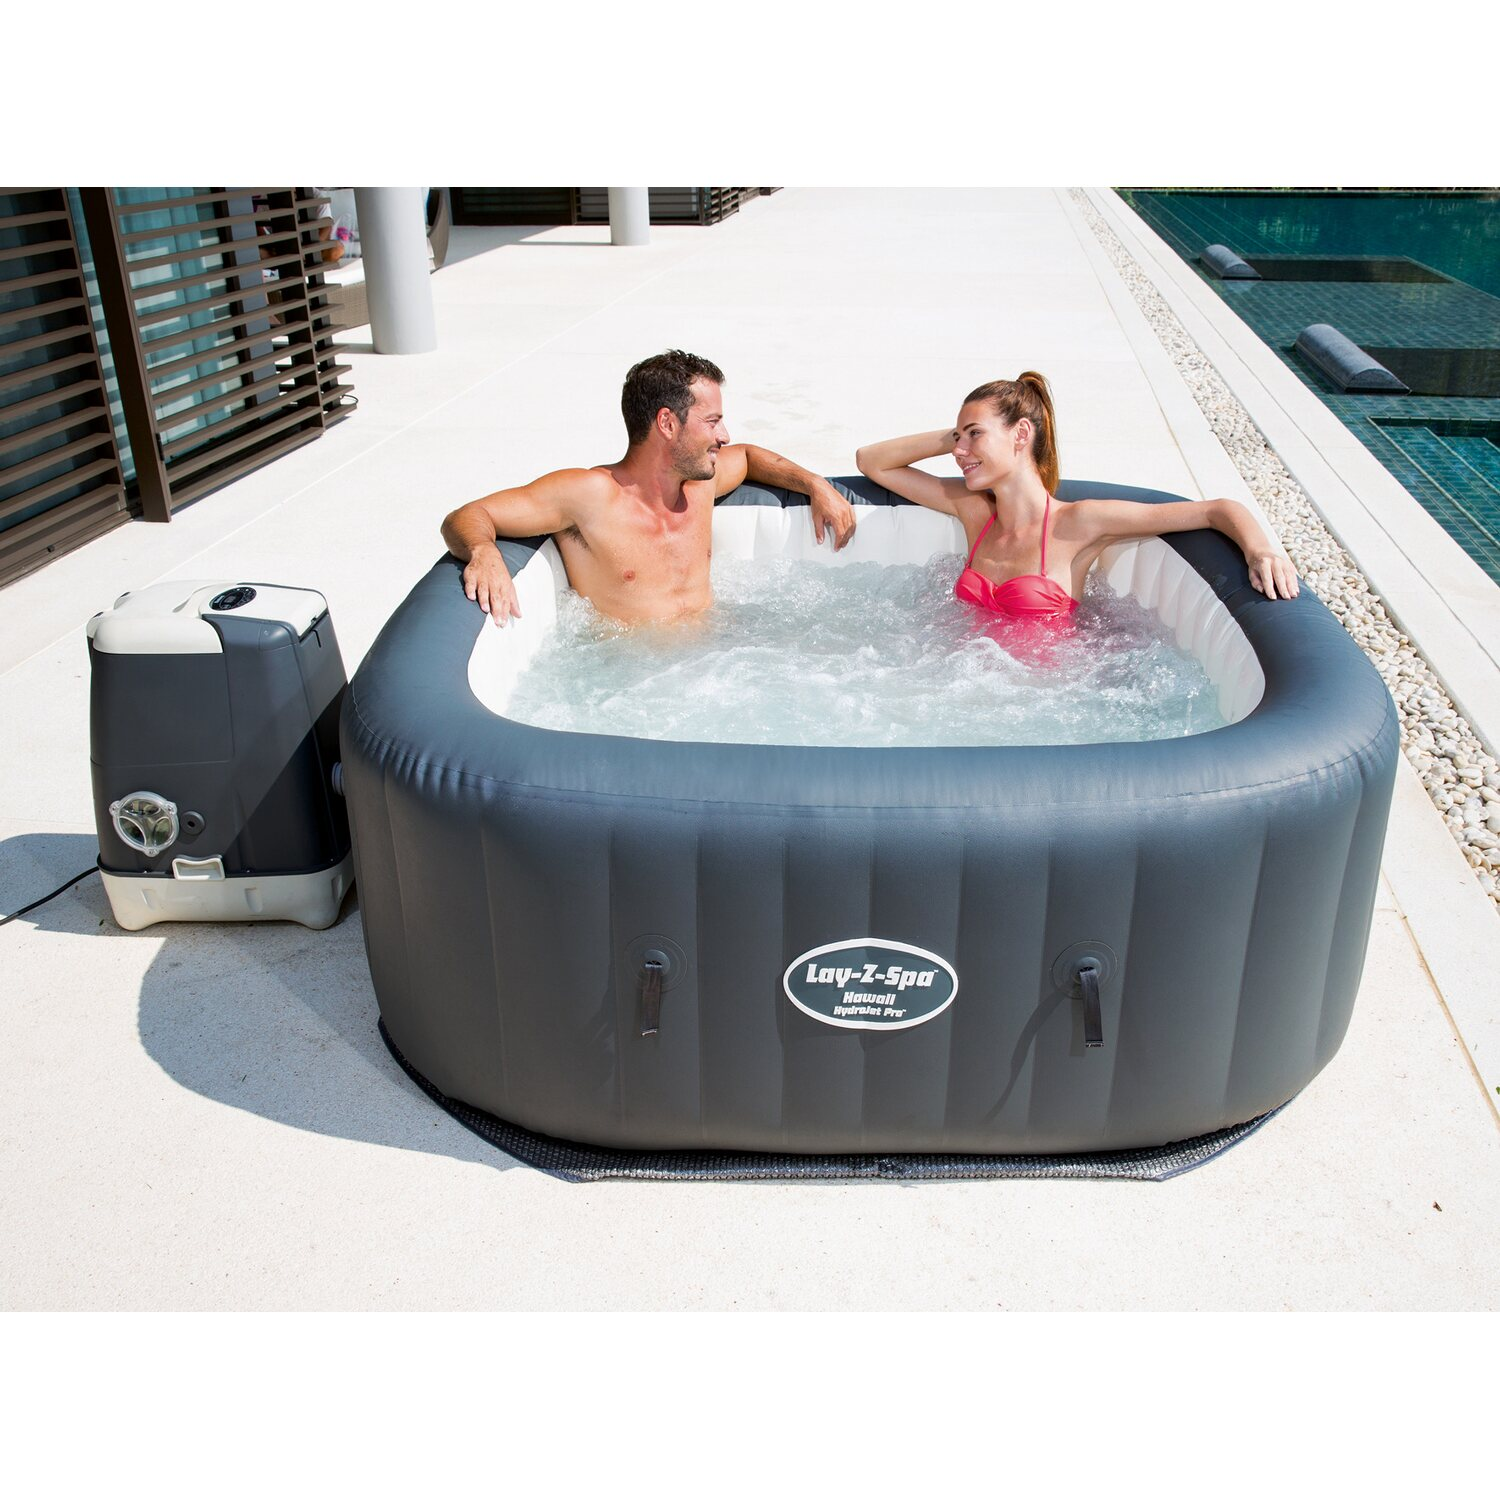 Bestway whirl pool lay z spa whirlpool hawaii kaufen bei obi for Bestway pool obi